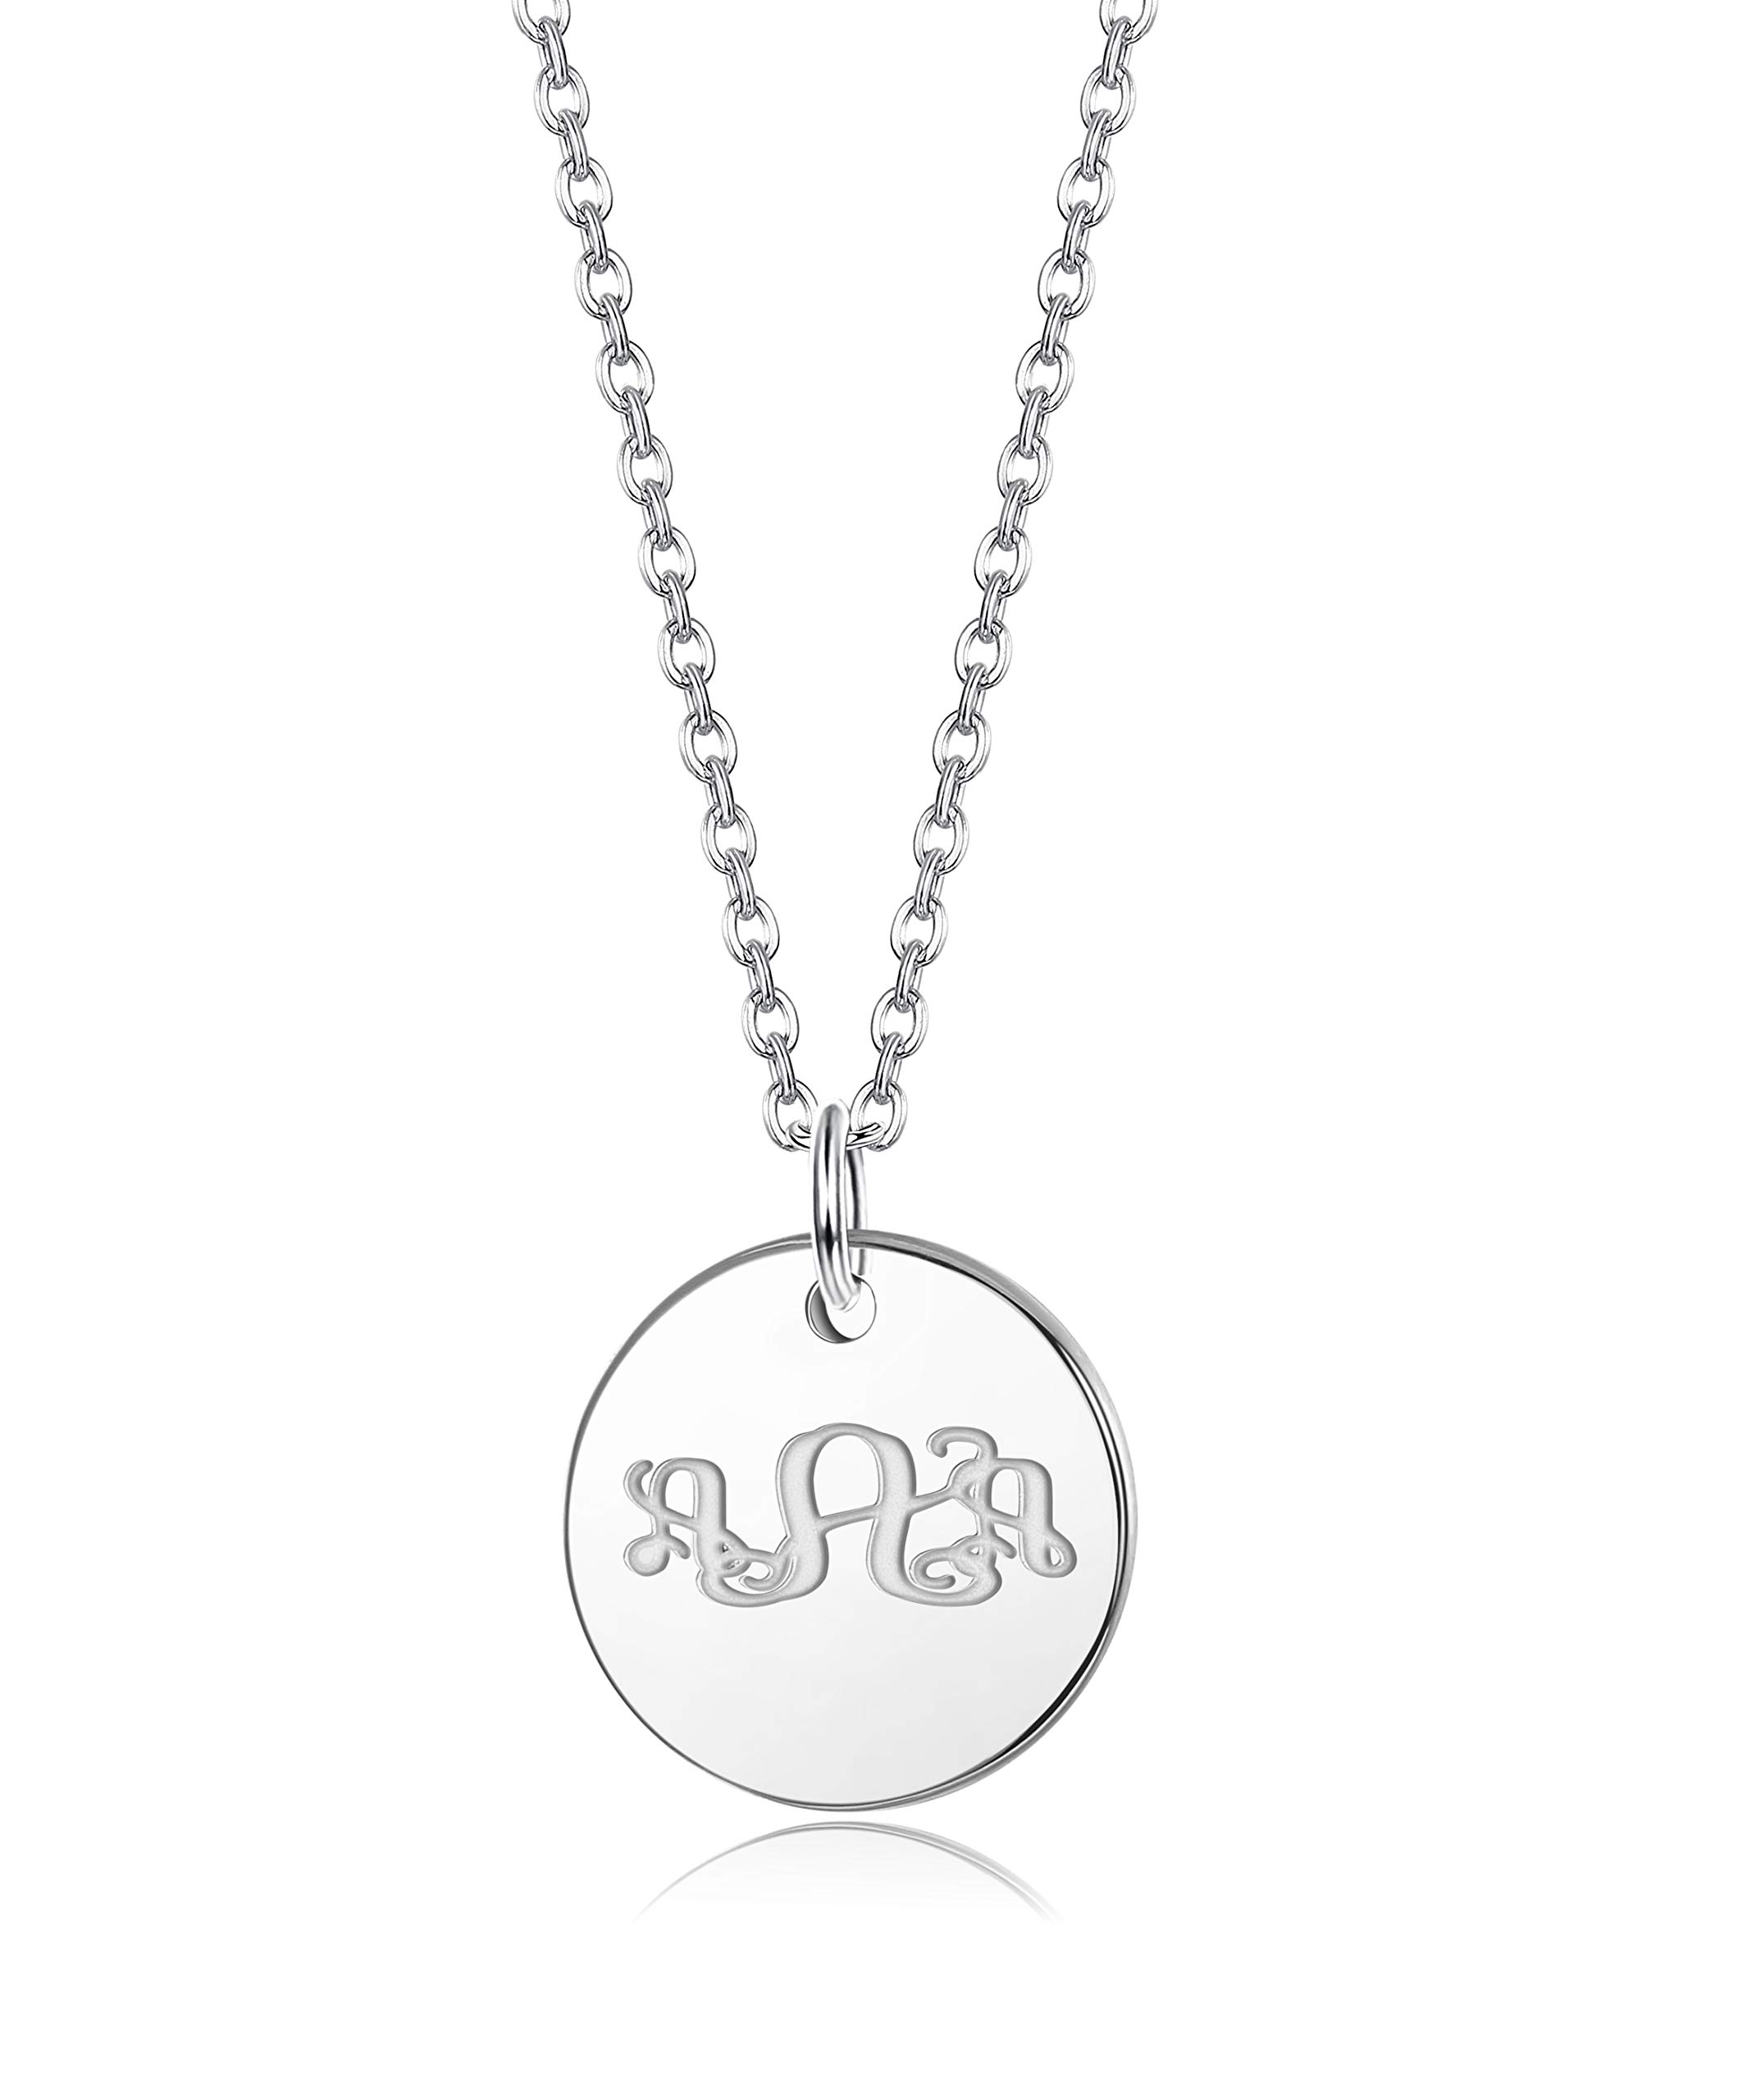 1ef07e8252d889 FUNRUN JEWELRY Stainless Steel Initial Necklace for Women Girls Alphabet  Letter Disco Pendant Necklace Personalized Gift